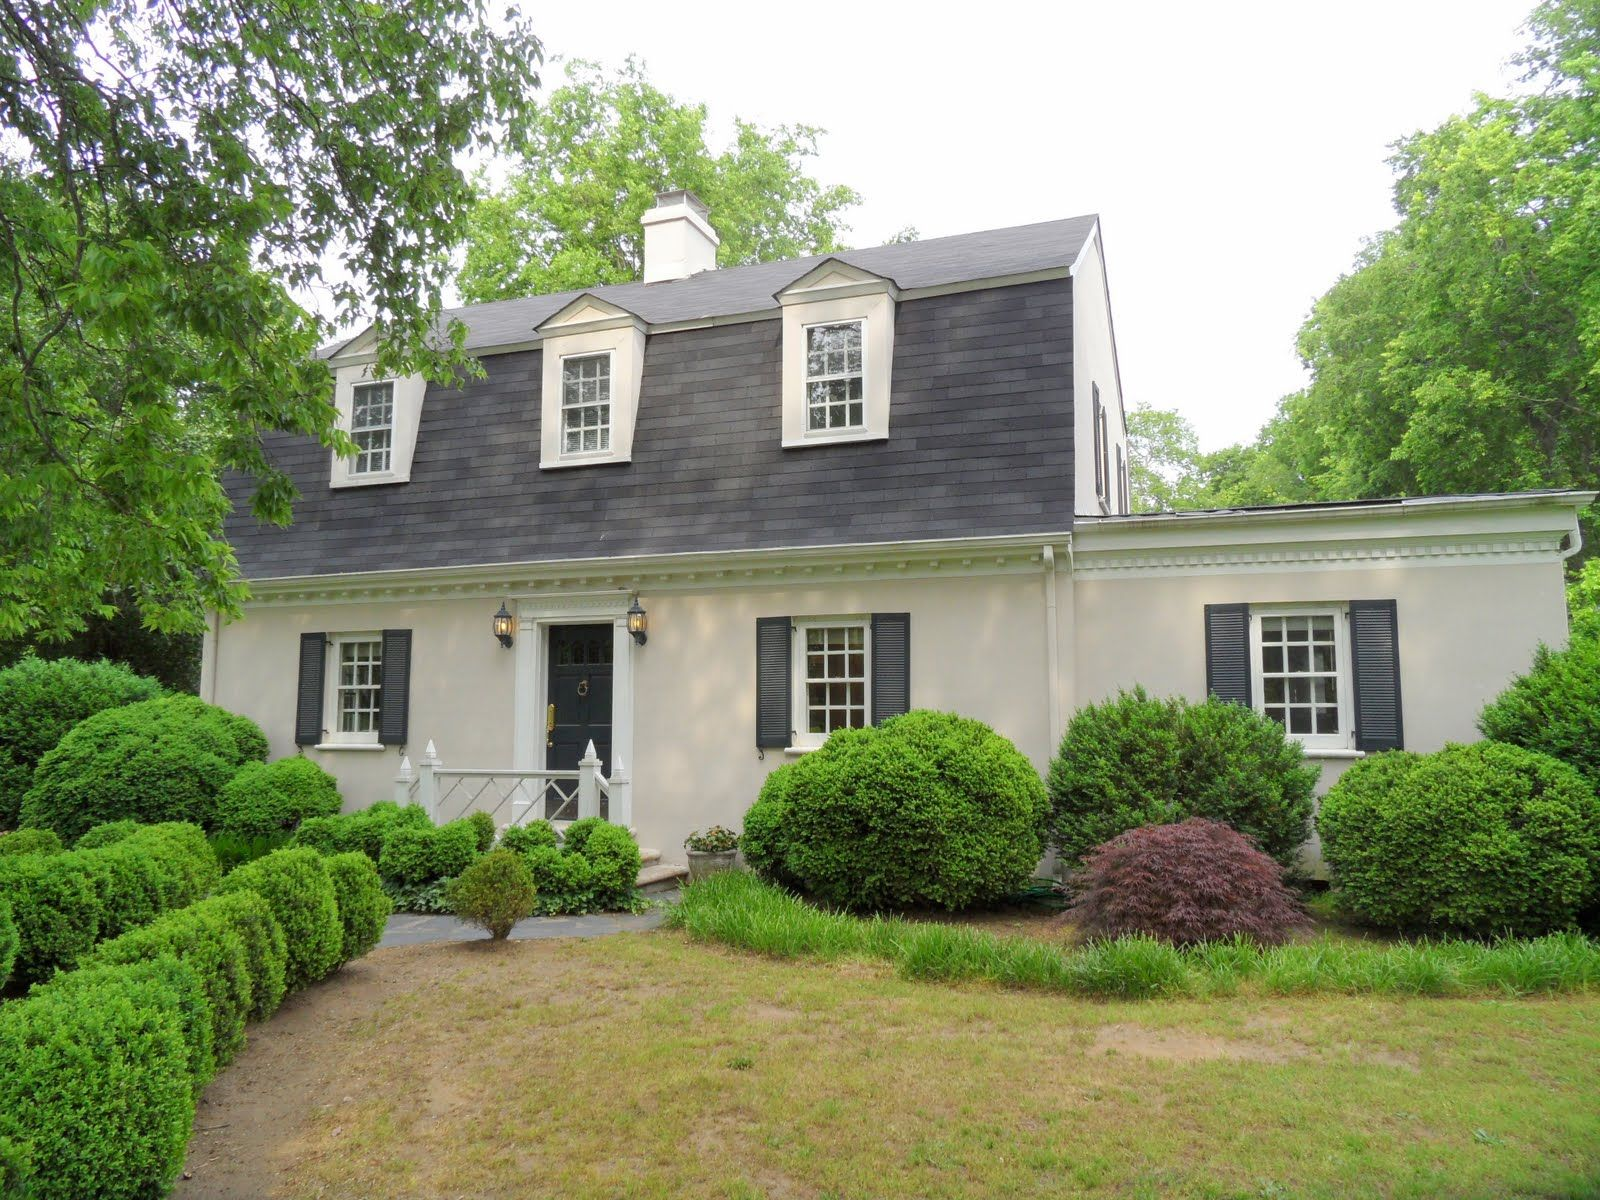 Mansard Roof Cottage There Is A Brand New Roof On The Home Fyi